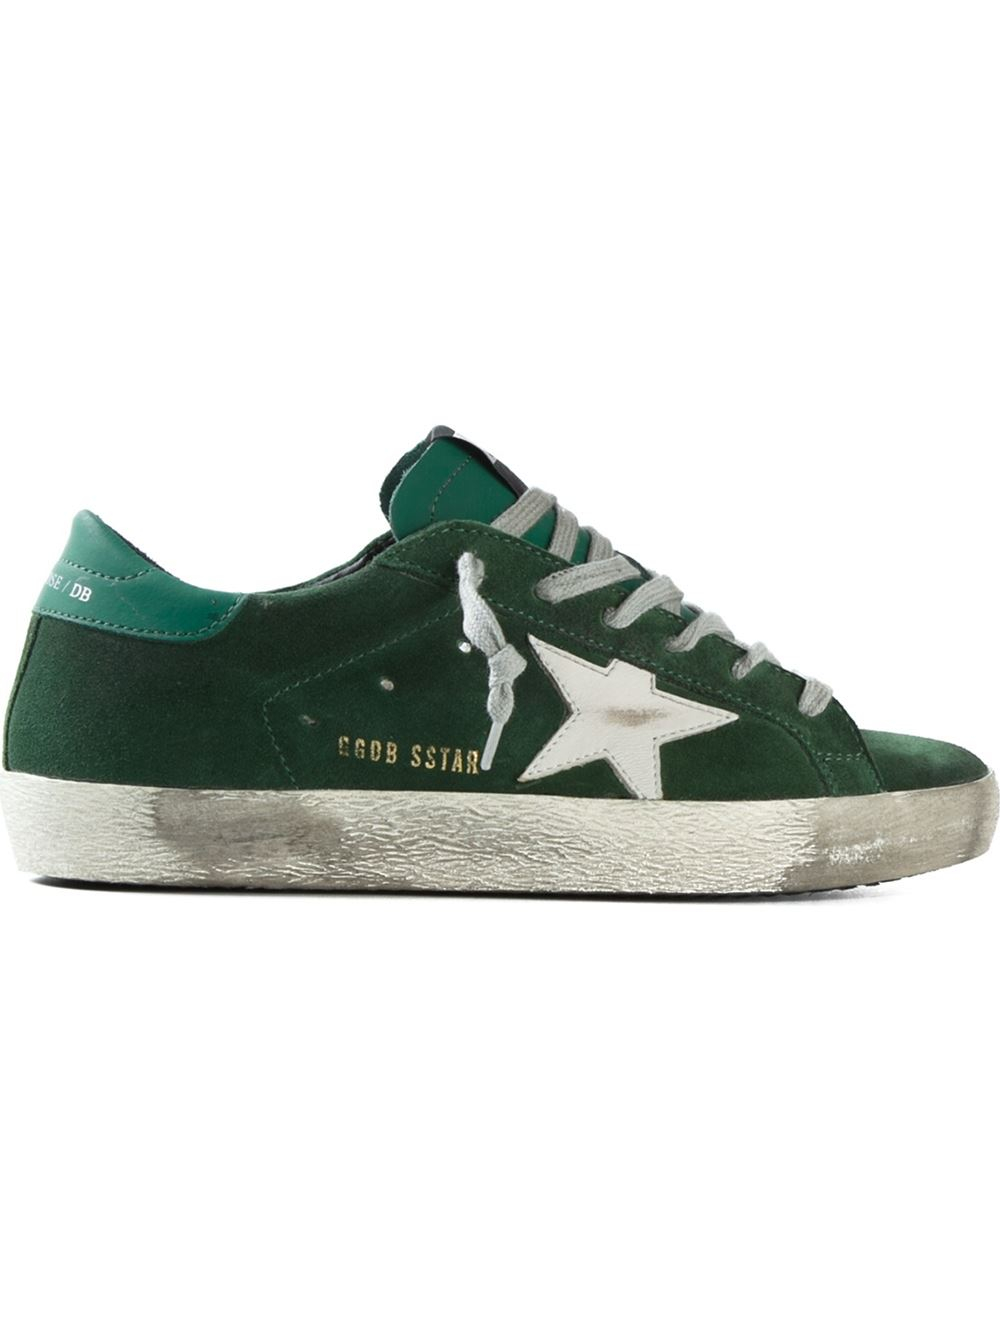 golden goose deluxe brand 39 super star 39 sneakers in green lyst. Black Bedroom Furniture Sets. Home Design Ideas